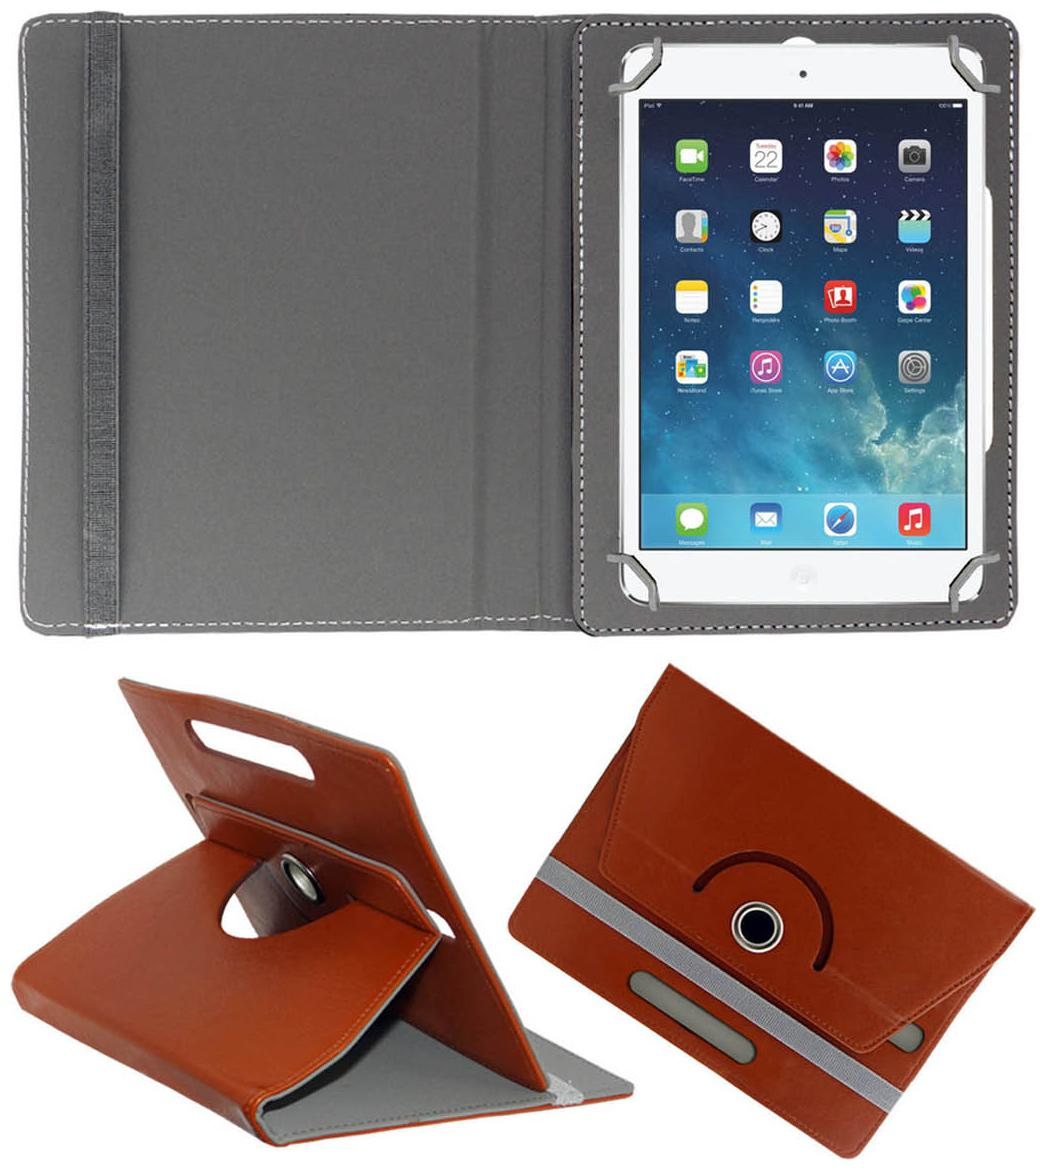 Acm Rotating 360 ° Book Cover For Apple iPad Mini 4  Brown  by Accessories Masters